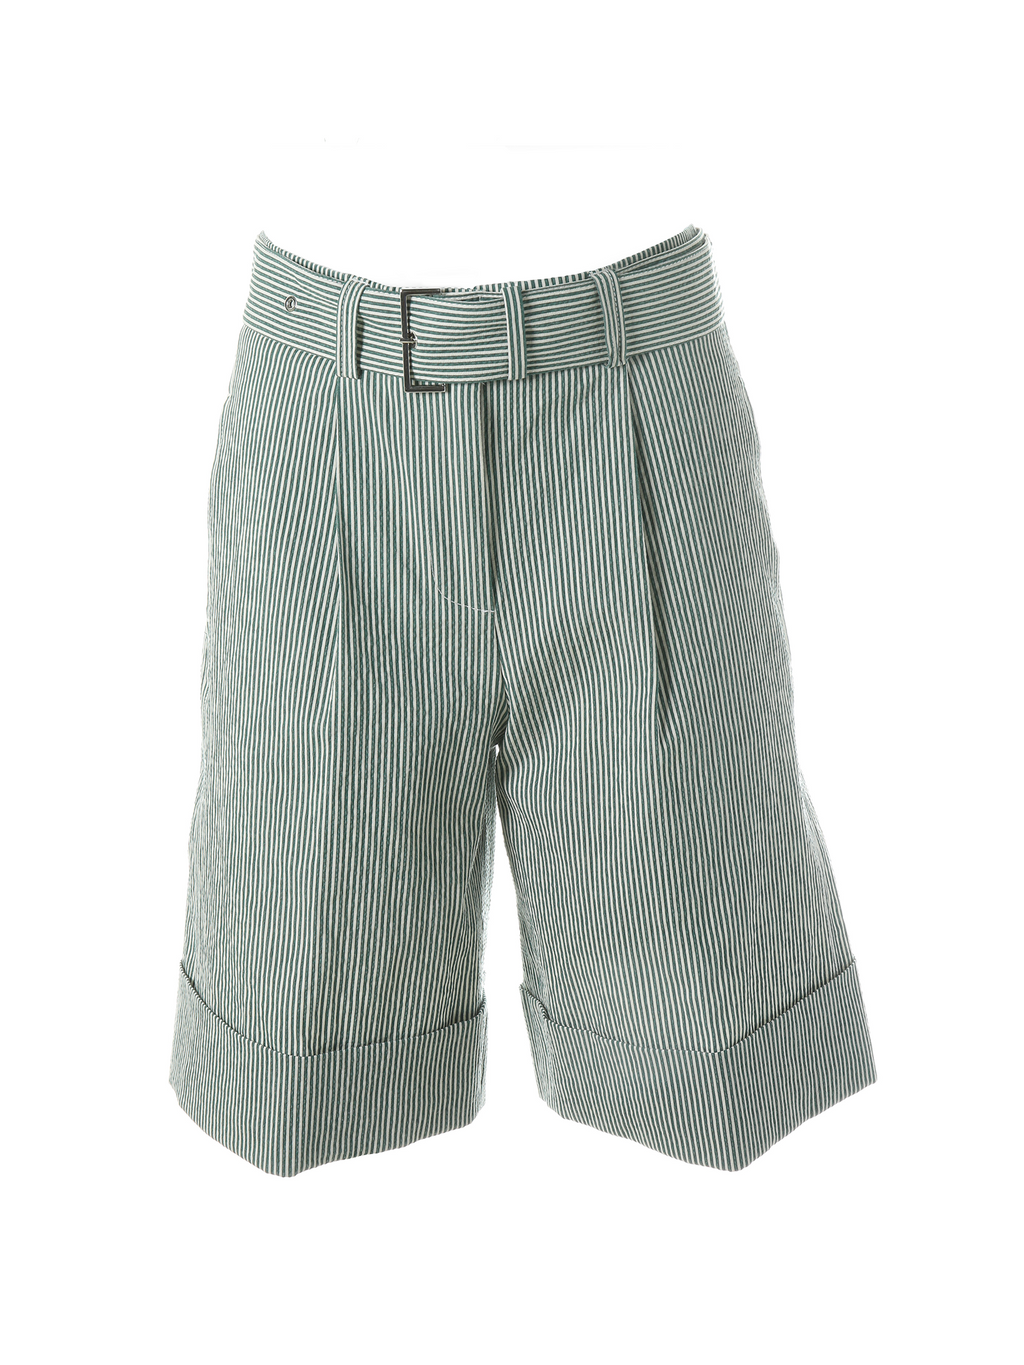 Peserico Pleated Shorts in Cotton Stretch